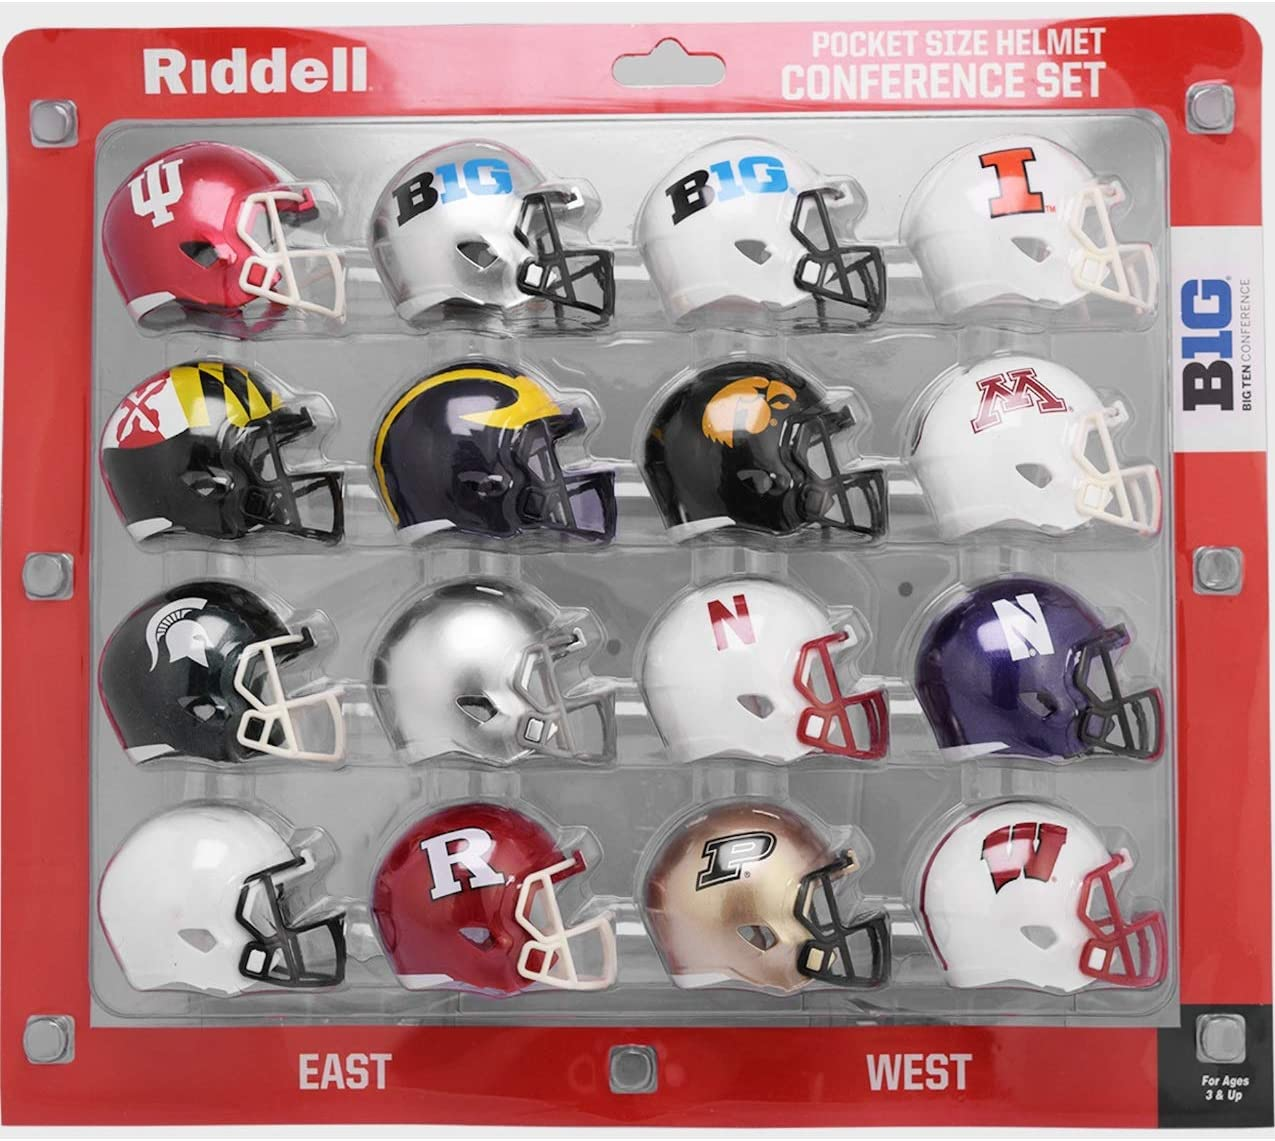 Riddell NCAA Pocket Pro Helmets, Big Ten Conference Set, (2020) New, Assorted : Sports & Outdoors